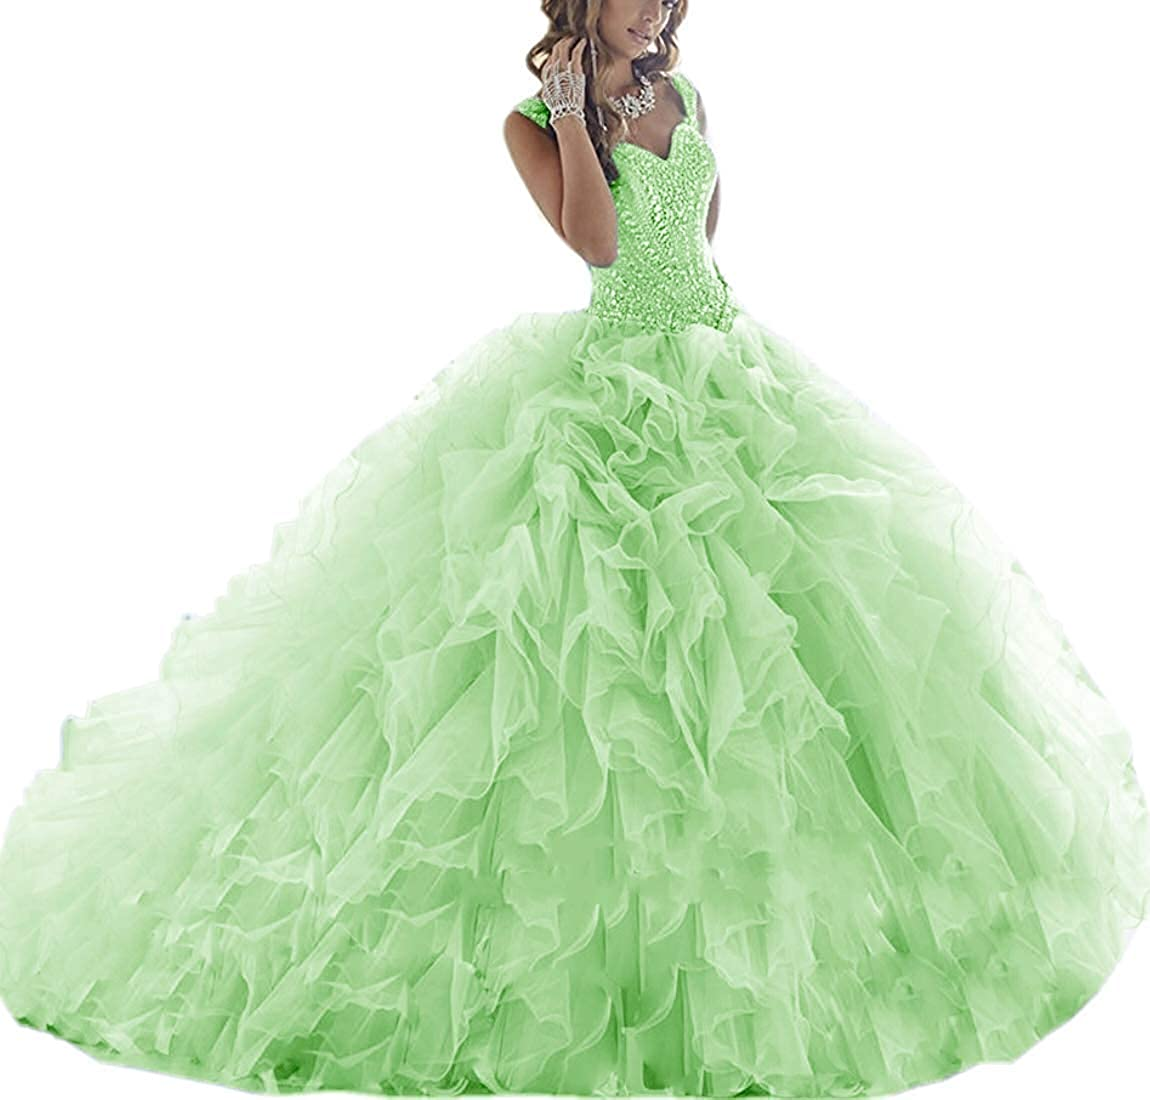 Lemon Green ASBridal Quinceanera Dresses Long Prom Party Dress Sweet 16 Crystals Beads Formal Ball Gowns Orangza